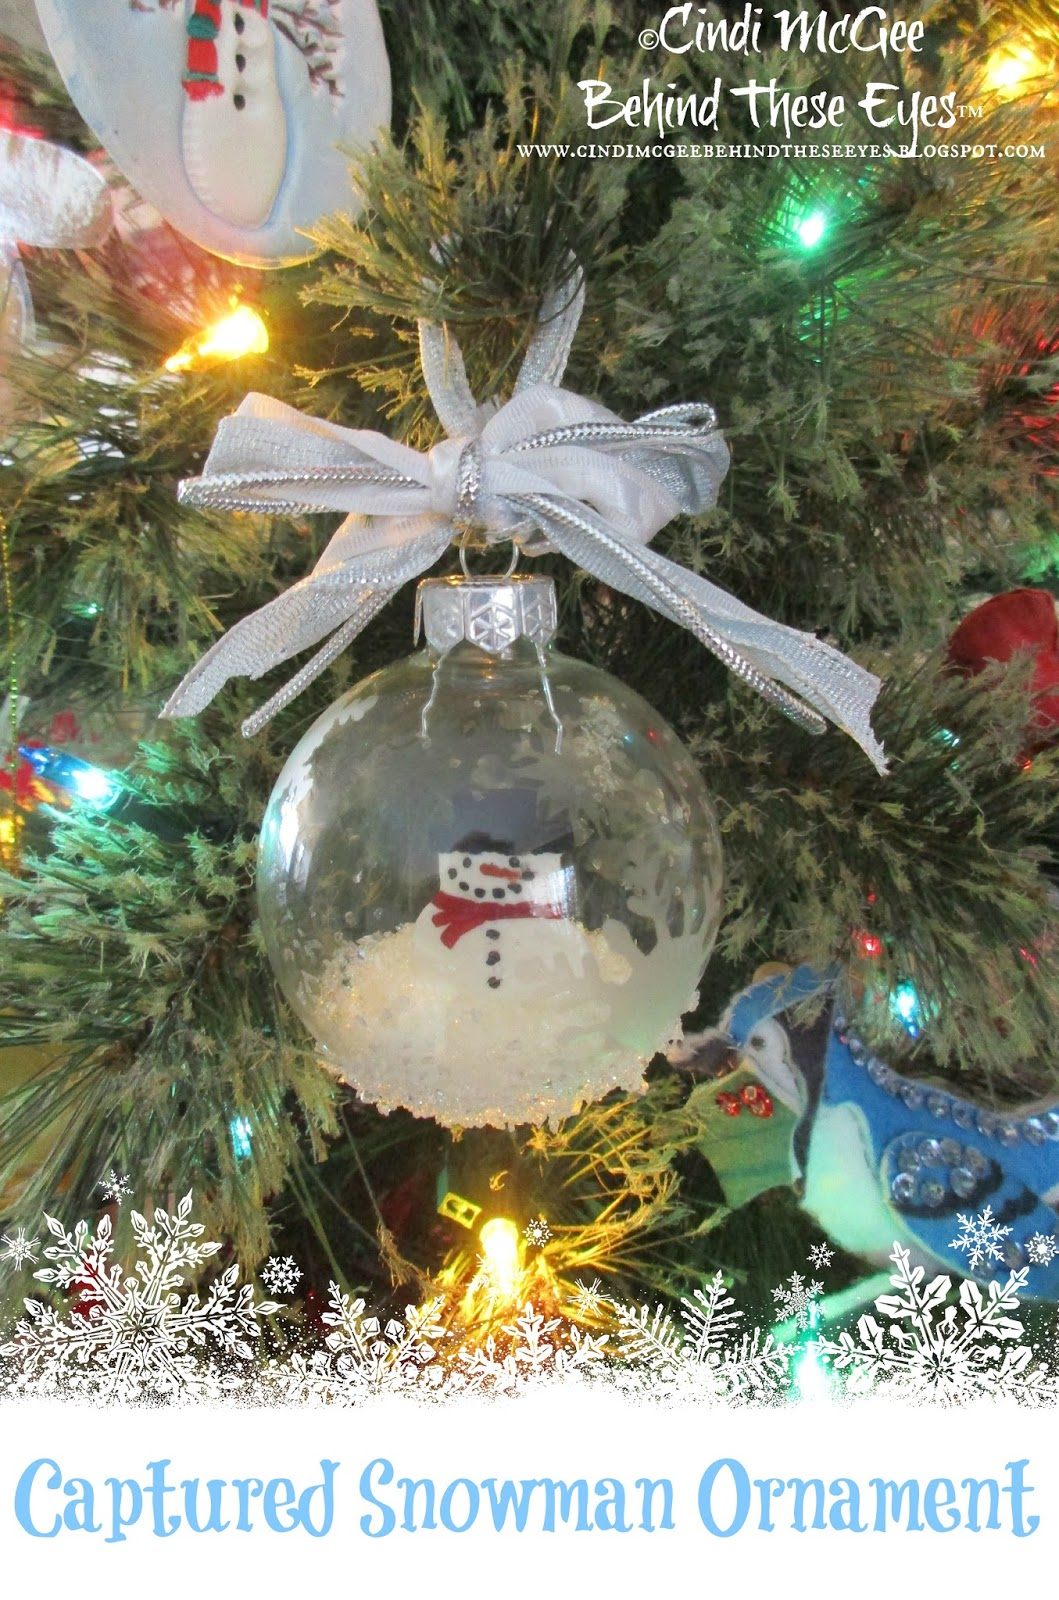 Captured Snowman Ornament